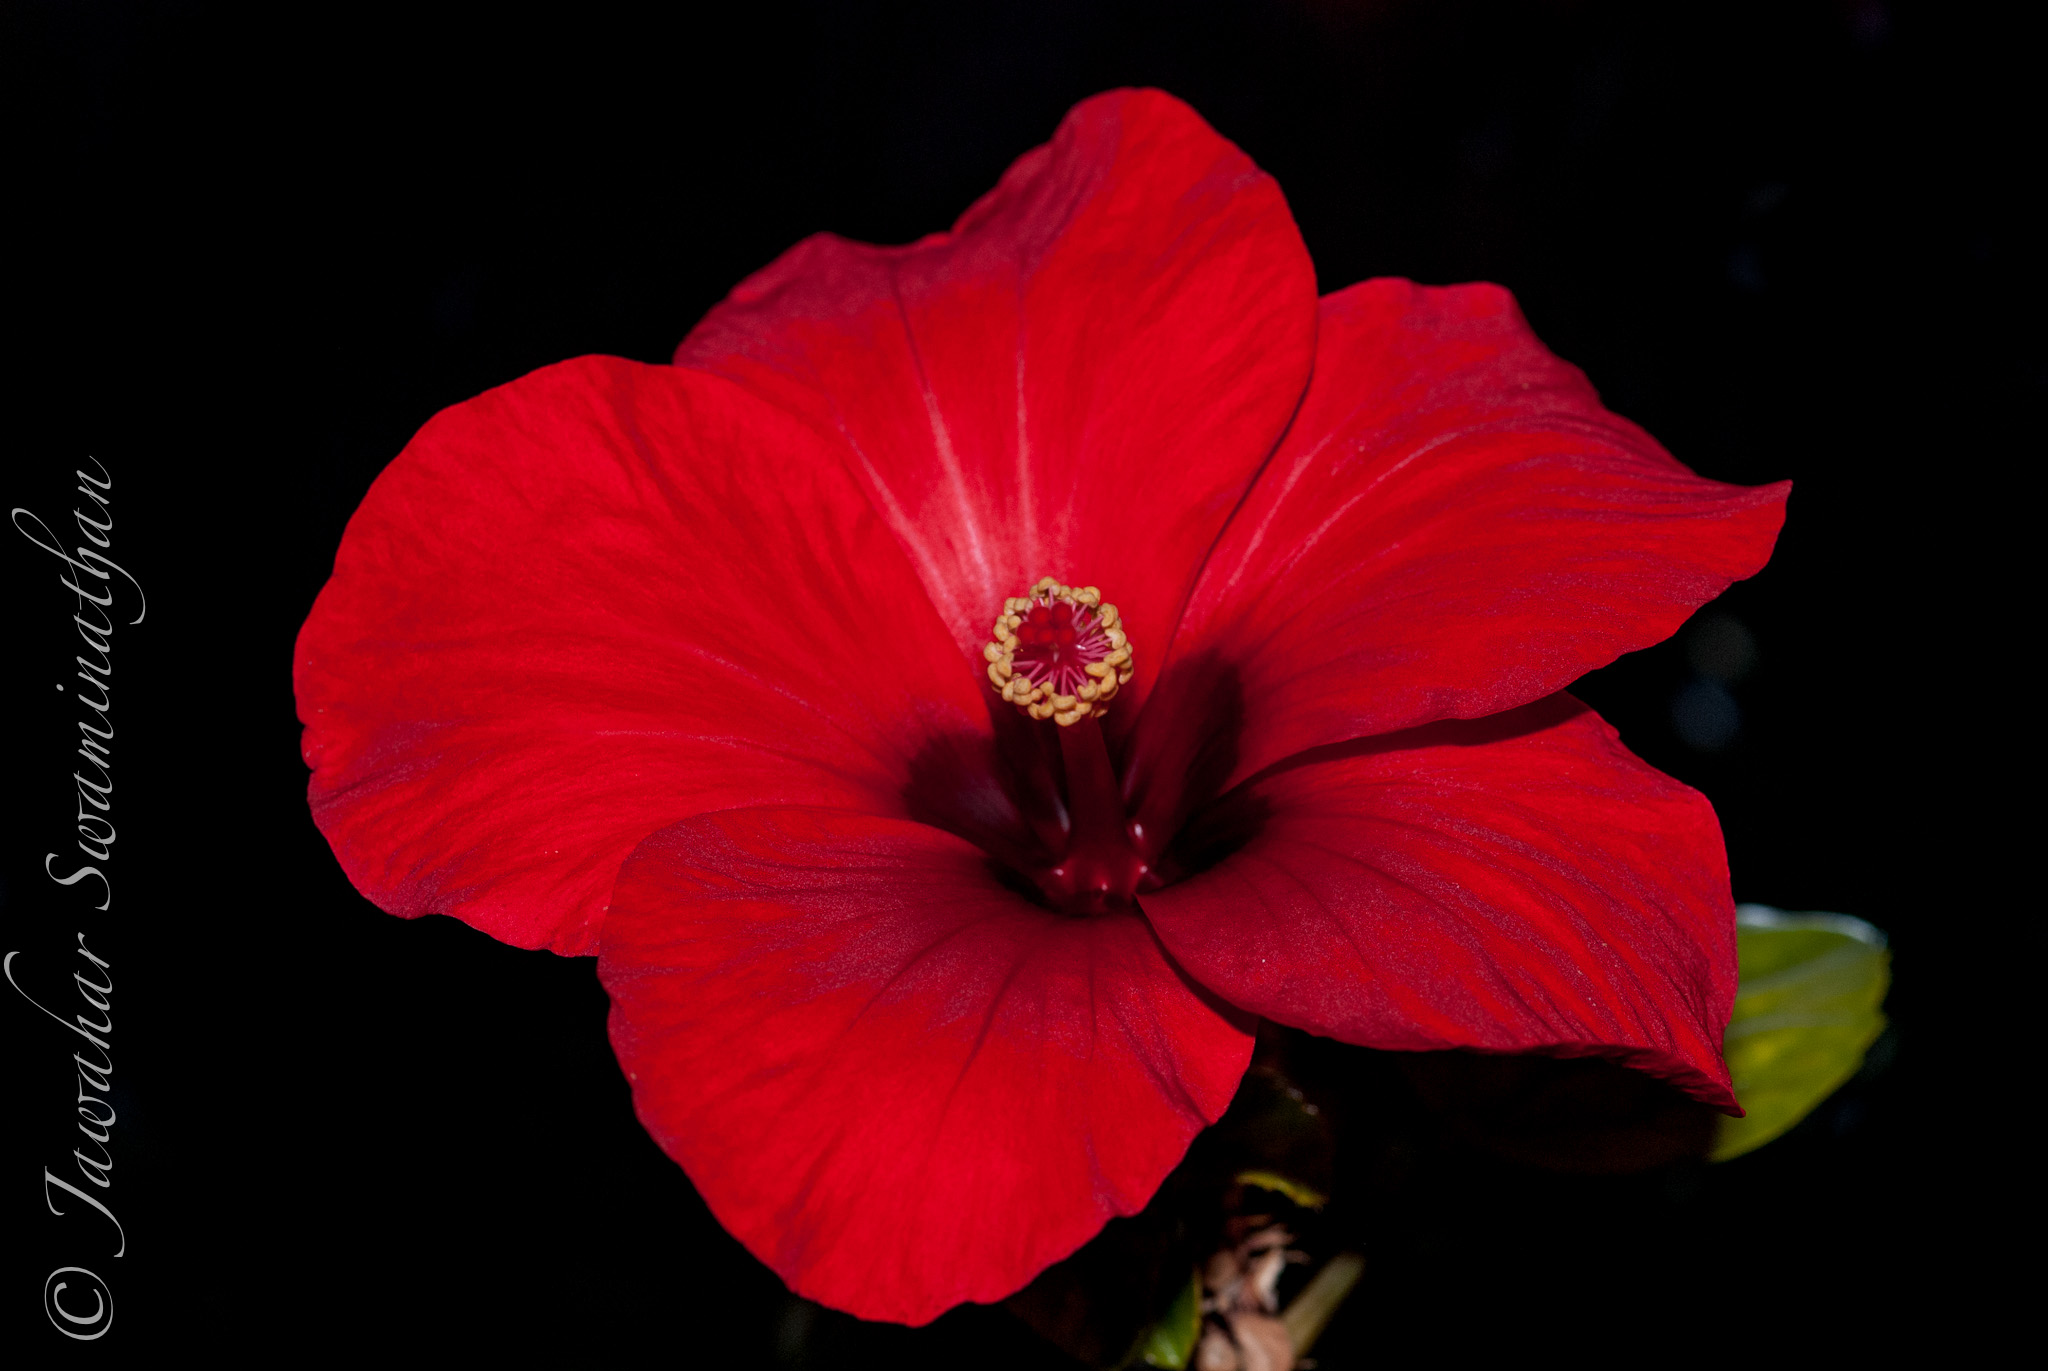 Anatomy of a hibiscus part 2 extreme macro juridicious a fully open hibiscus flower izmirmasajfo Image collections